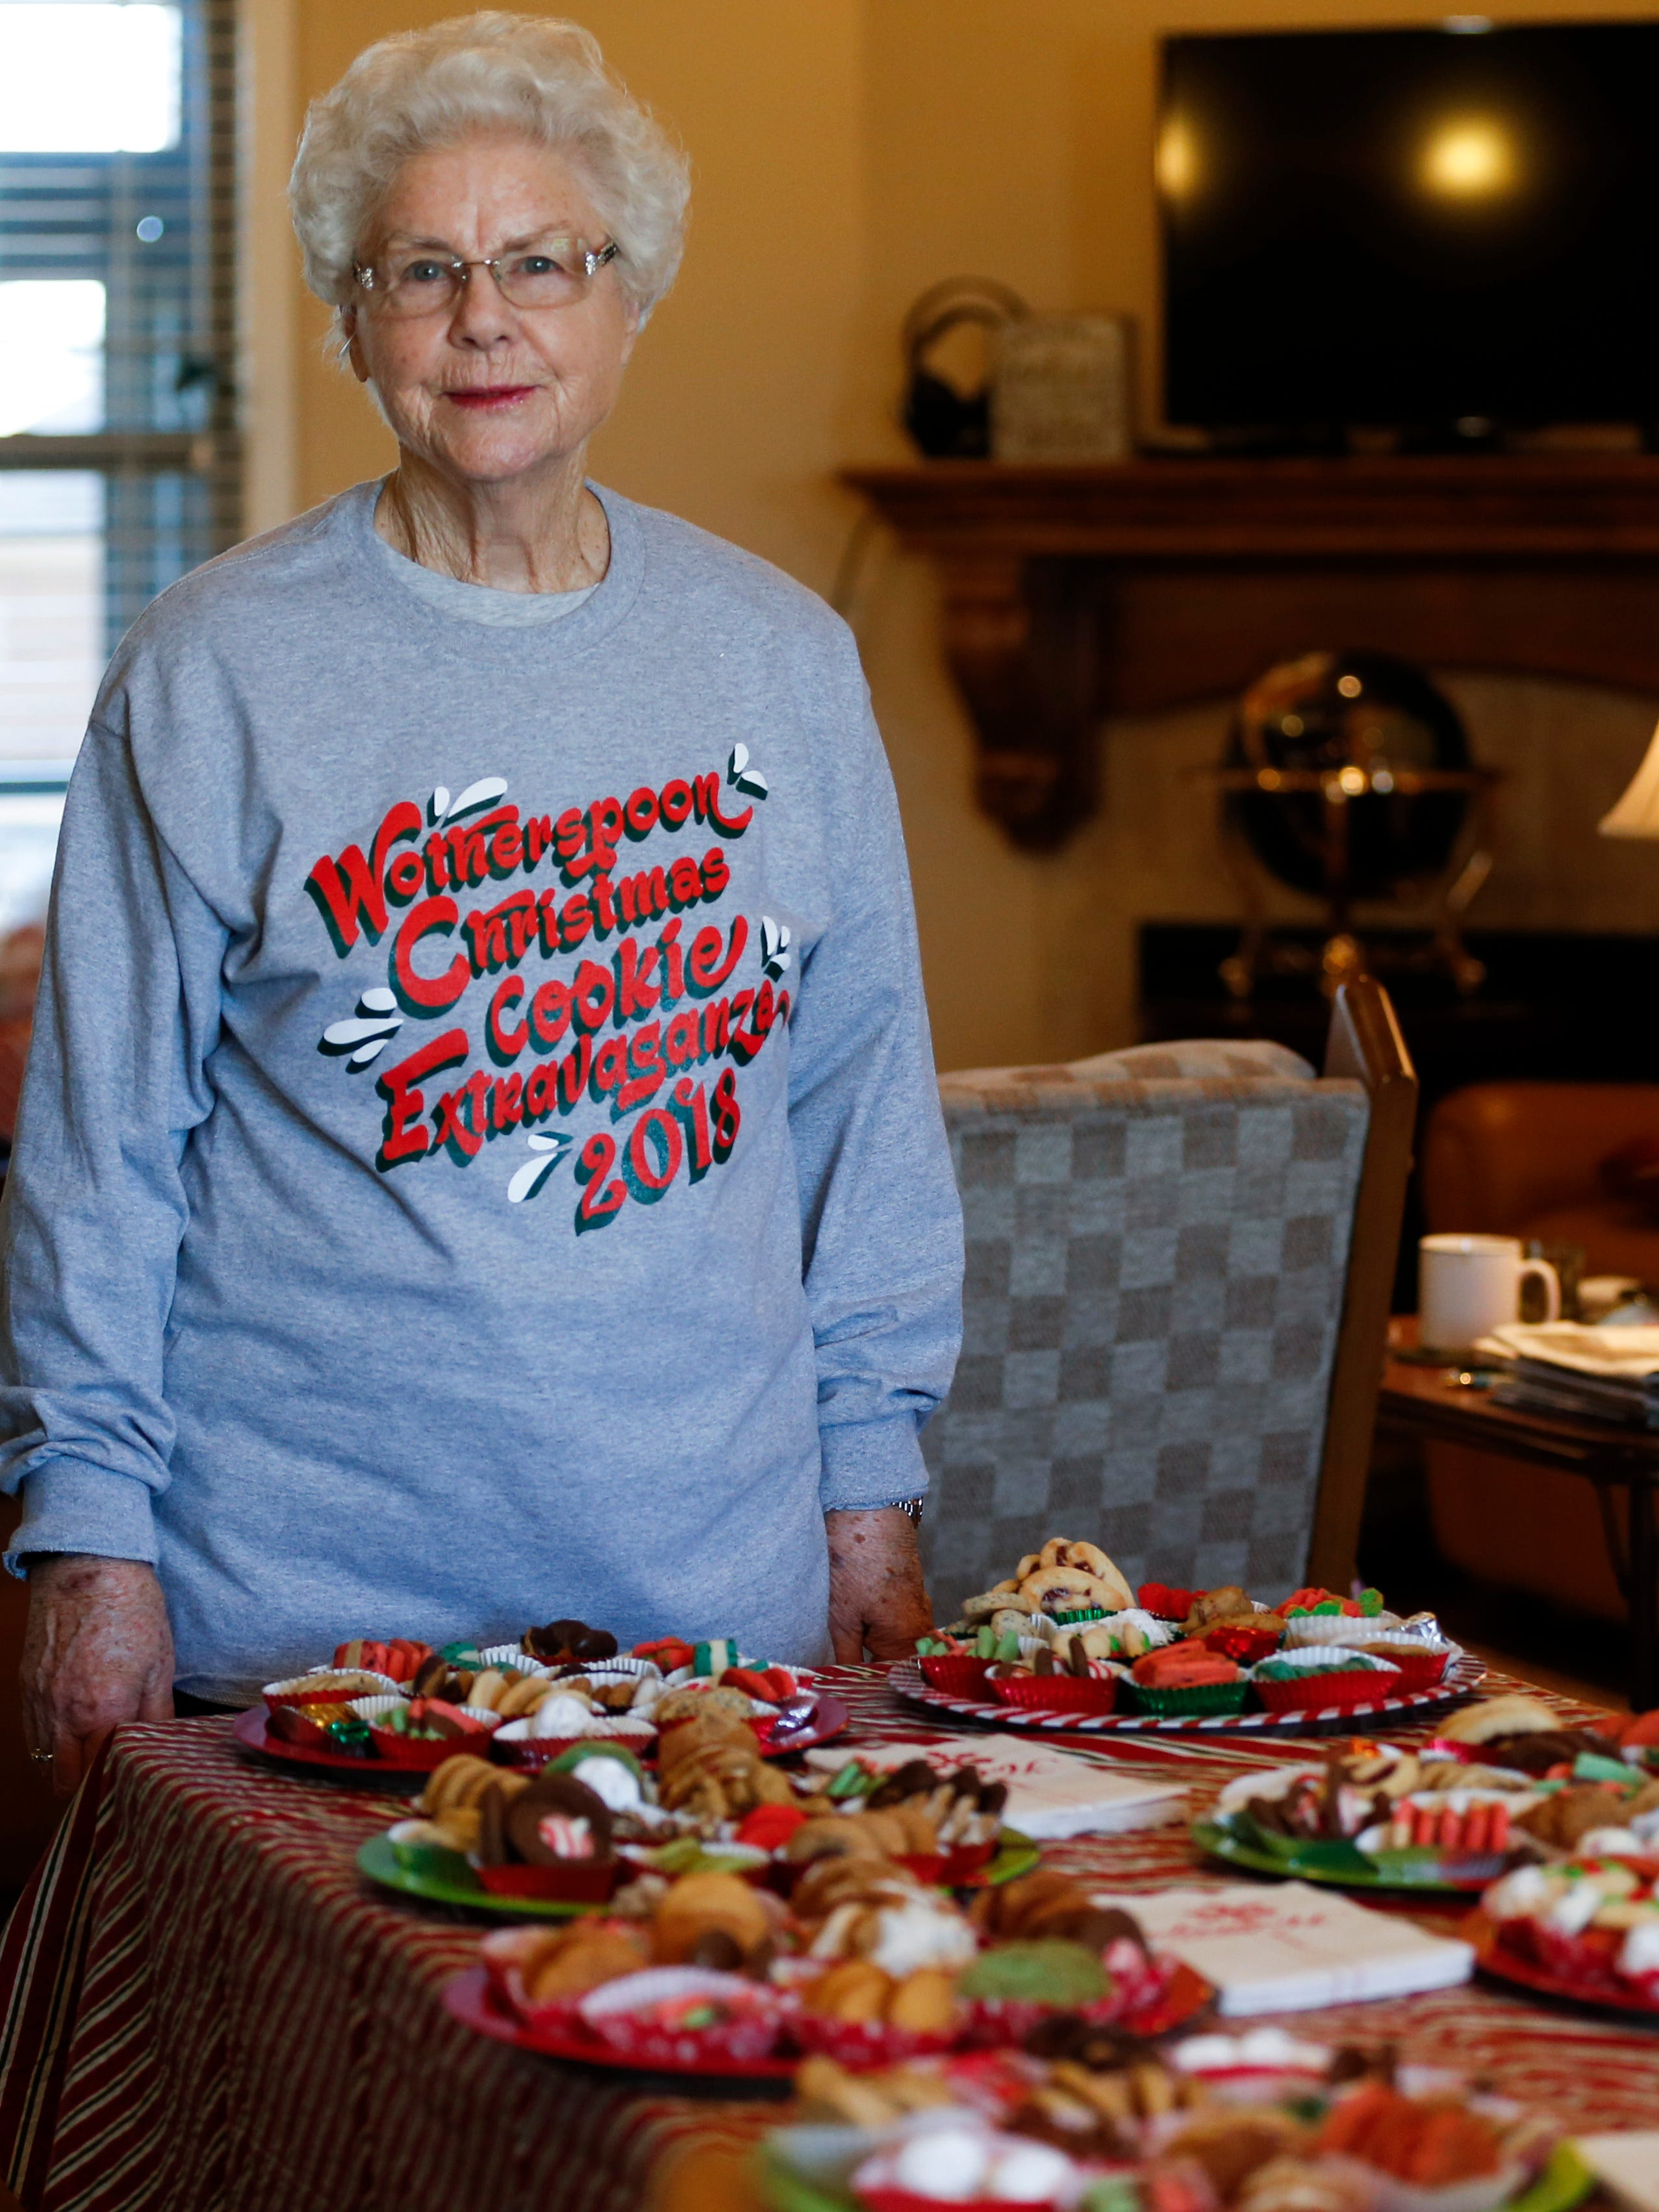 Jeanette Wotherspoon, 84, bakes thousands of Christmas cookies every year for the annual Wotherspoon Christmas cookie extravaganza.